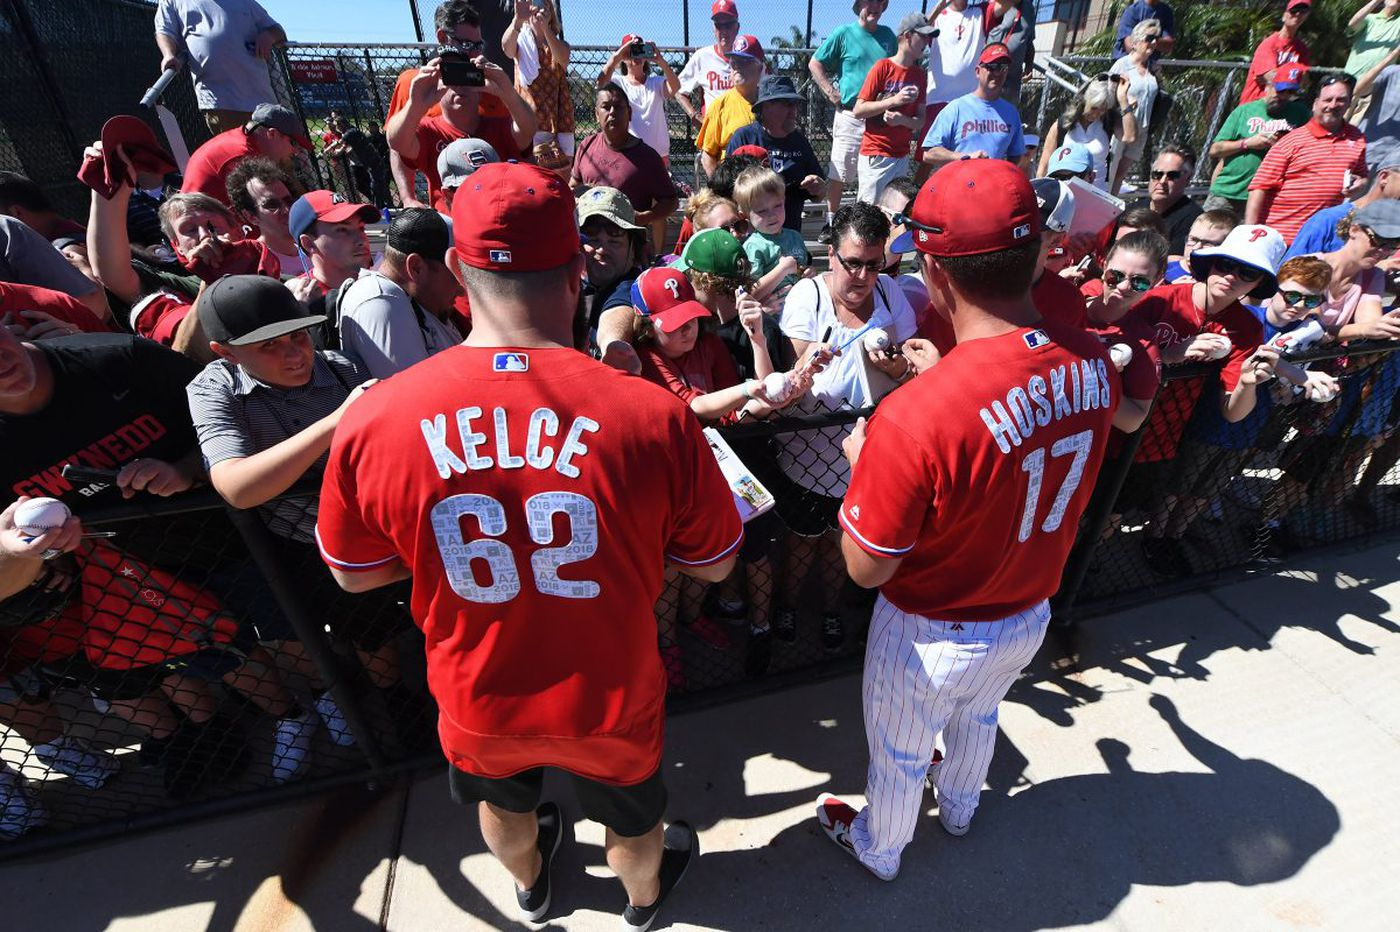 Jason Kelce's visit highlights Phillies' unusual first day